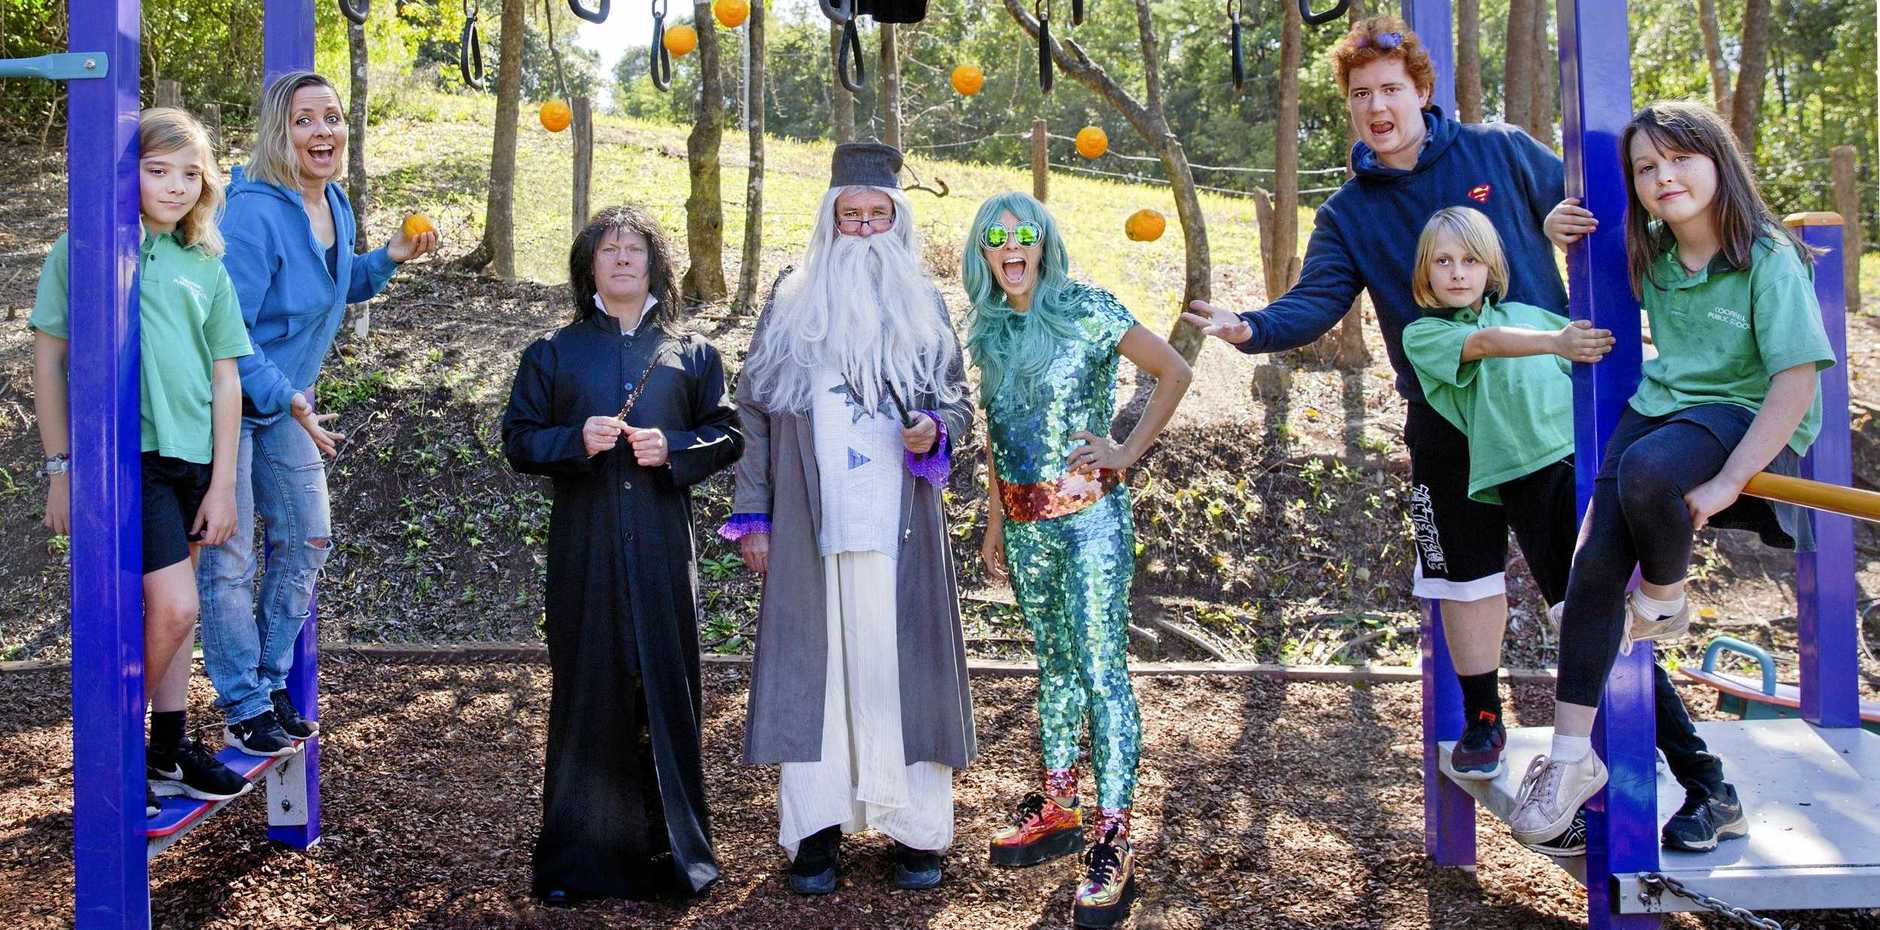 MAGIC: Coorabell Public School Fete 2019 will be totally a Harry Potter at Hogwarts affair.